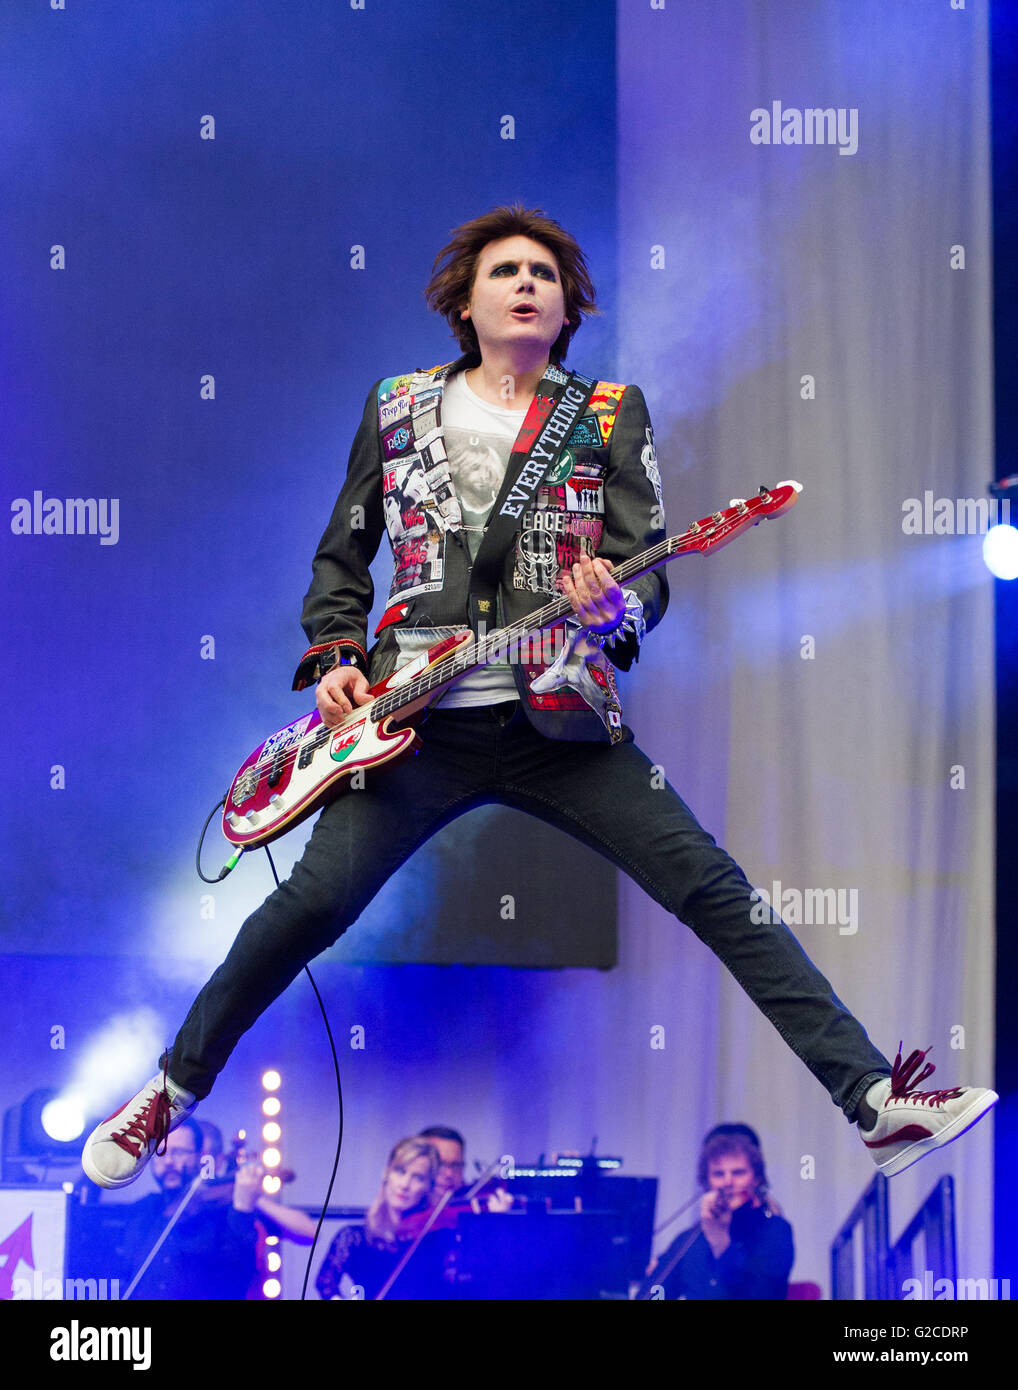 Manic Street Preachers perform at Swansea's Liberty Stadium on May 28th 2016. Photo shows bassist Nicky Wire. - Stock Image